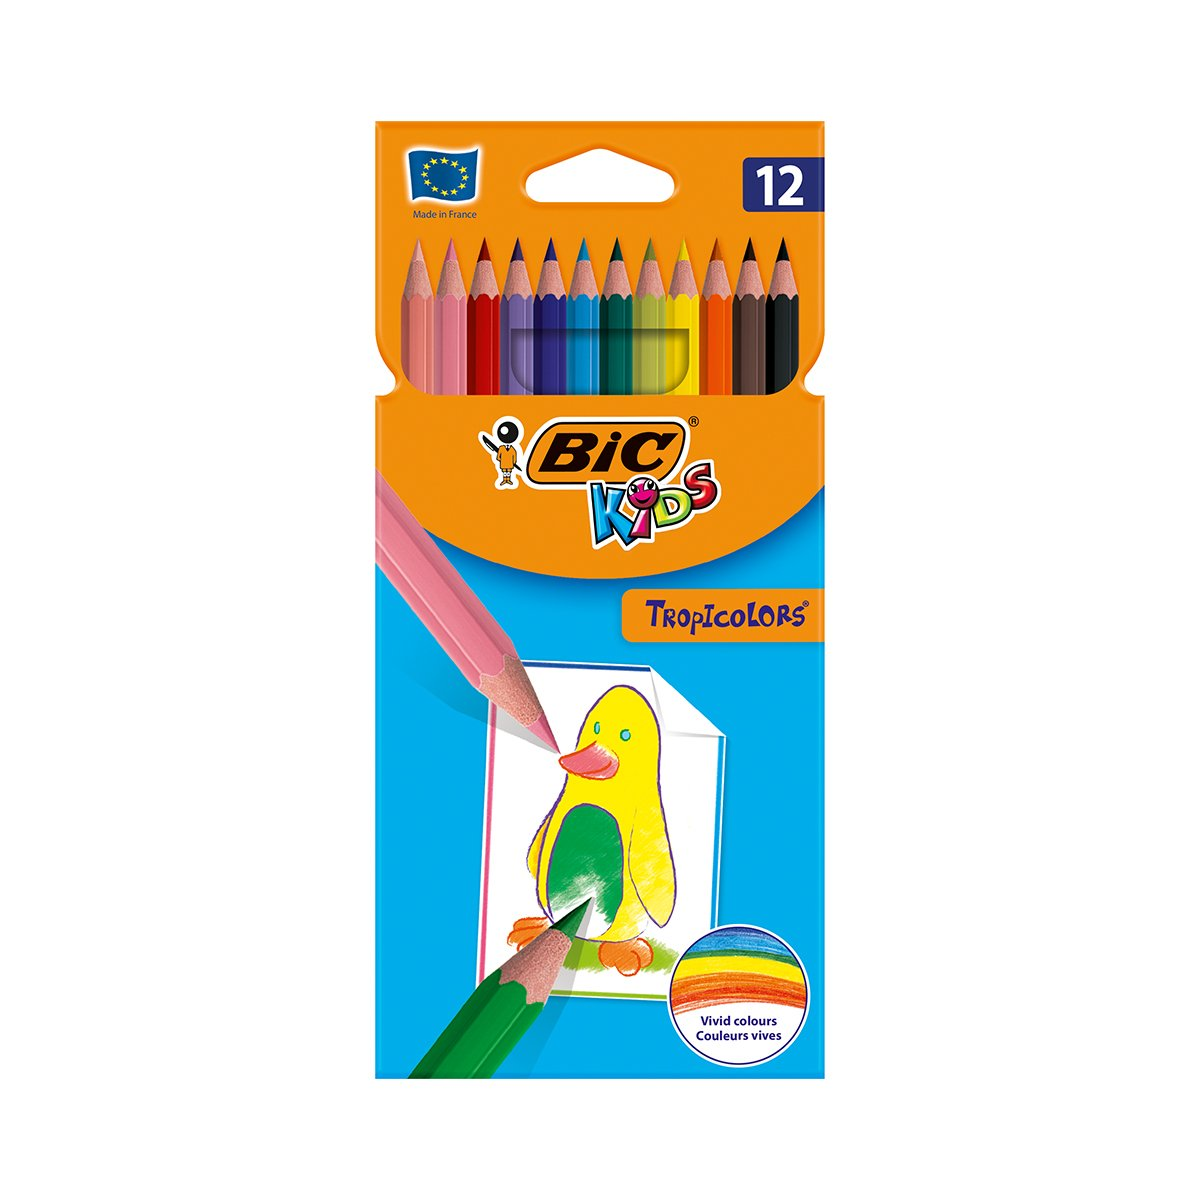 Set creioane colorate Tropicolors Bic, P12